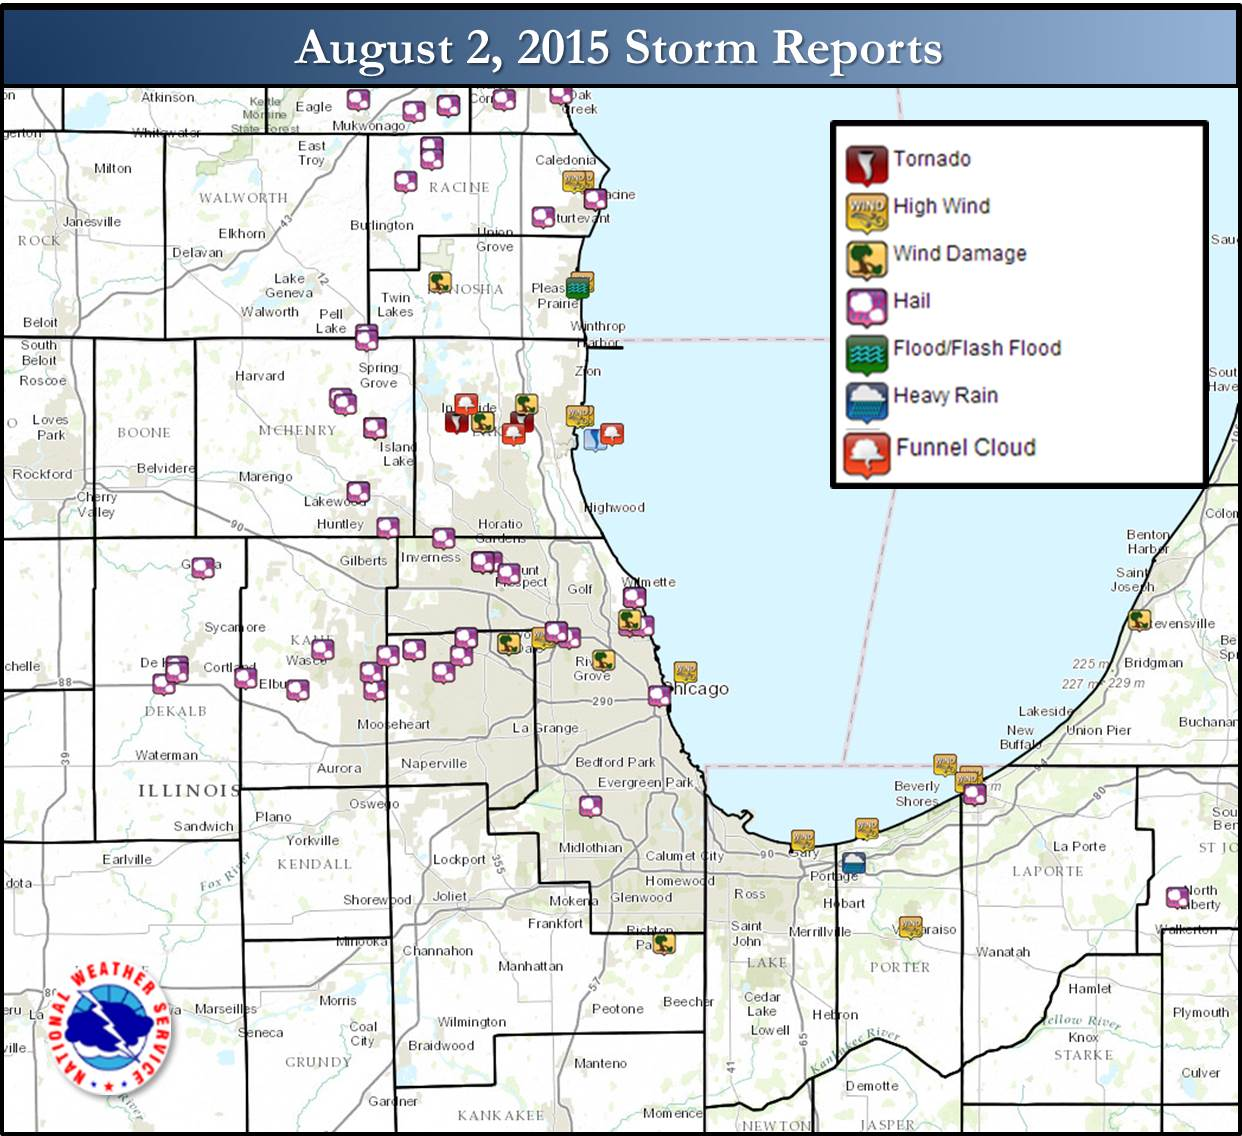 hight resolution of public information statement national weather service chicago il 835 pm cdt mon aug 3 2015 nws damage survey results for august 2 2015 lake county il